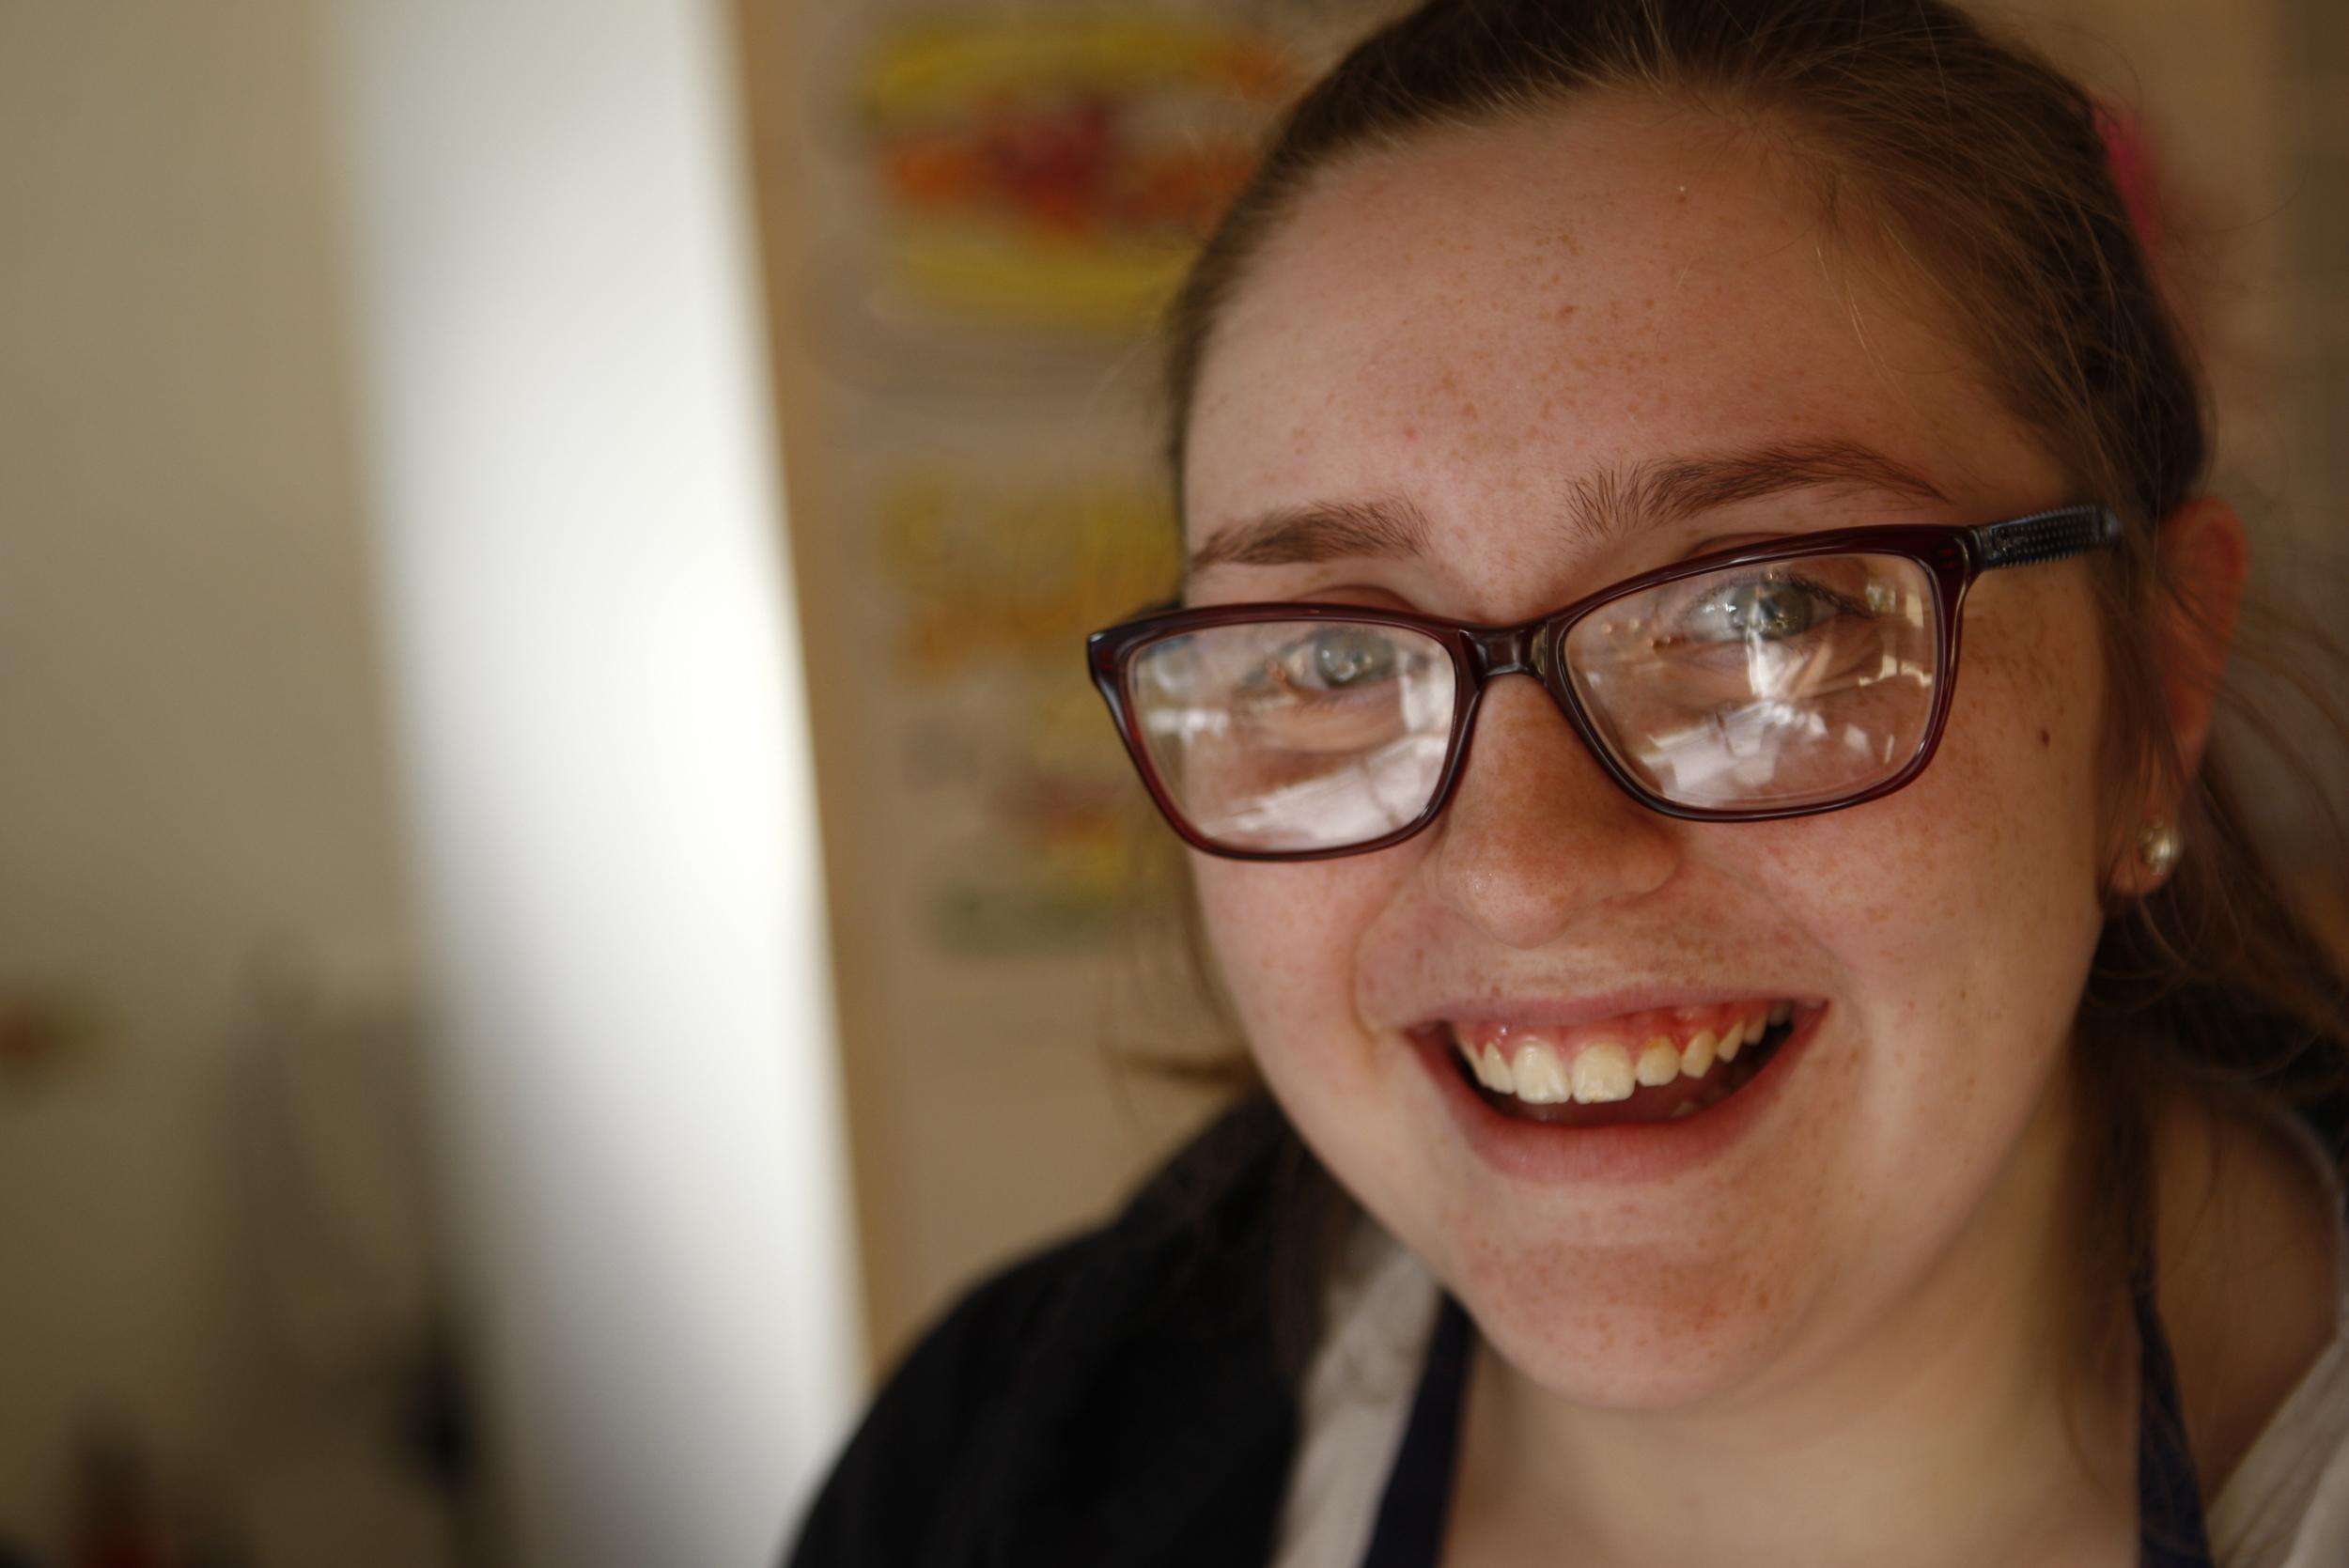 Georgie is one of our students working at St Pio's Cafe, she is studying hard and wants to go into teaching, she is a fantastic cook in the kitchen and her 'Billionare Shortbreads' are to die for!!